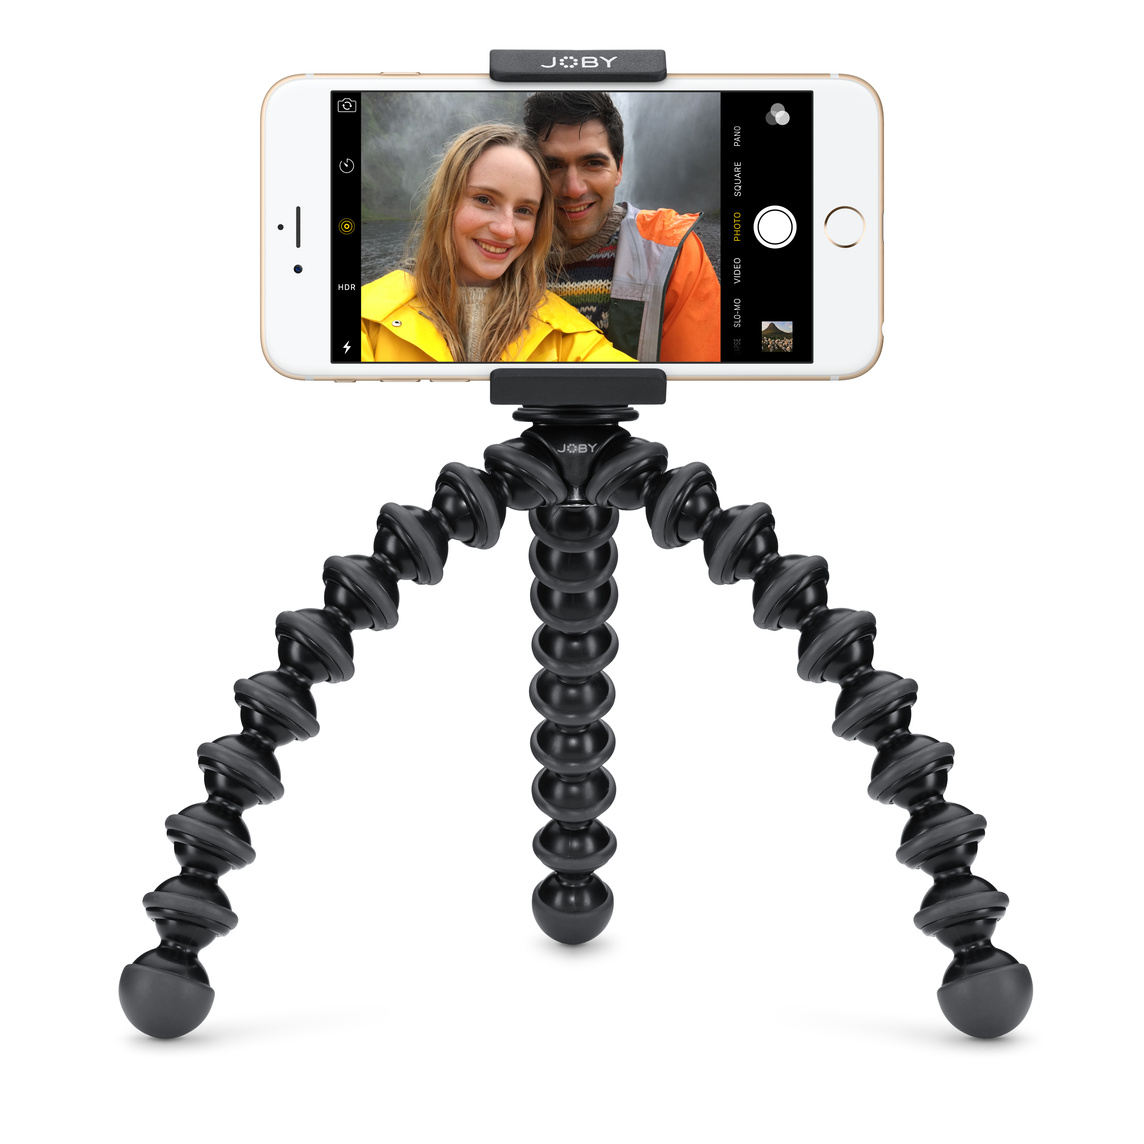 buy popular f7c4b 96f8d Joby GripTight GorillaPod Stand PRO for iPhone